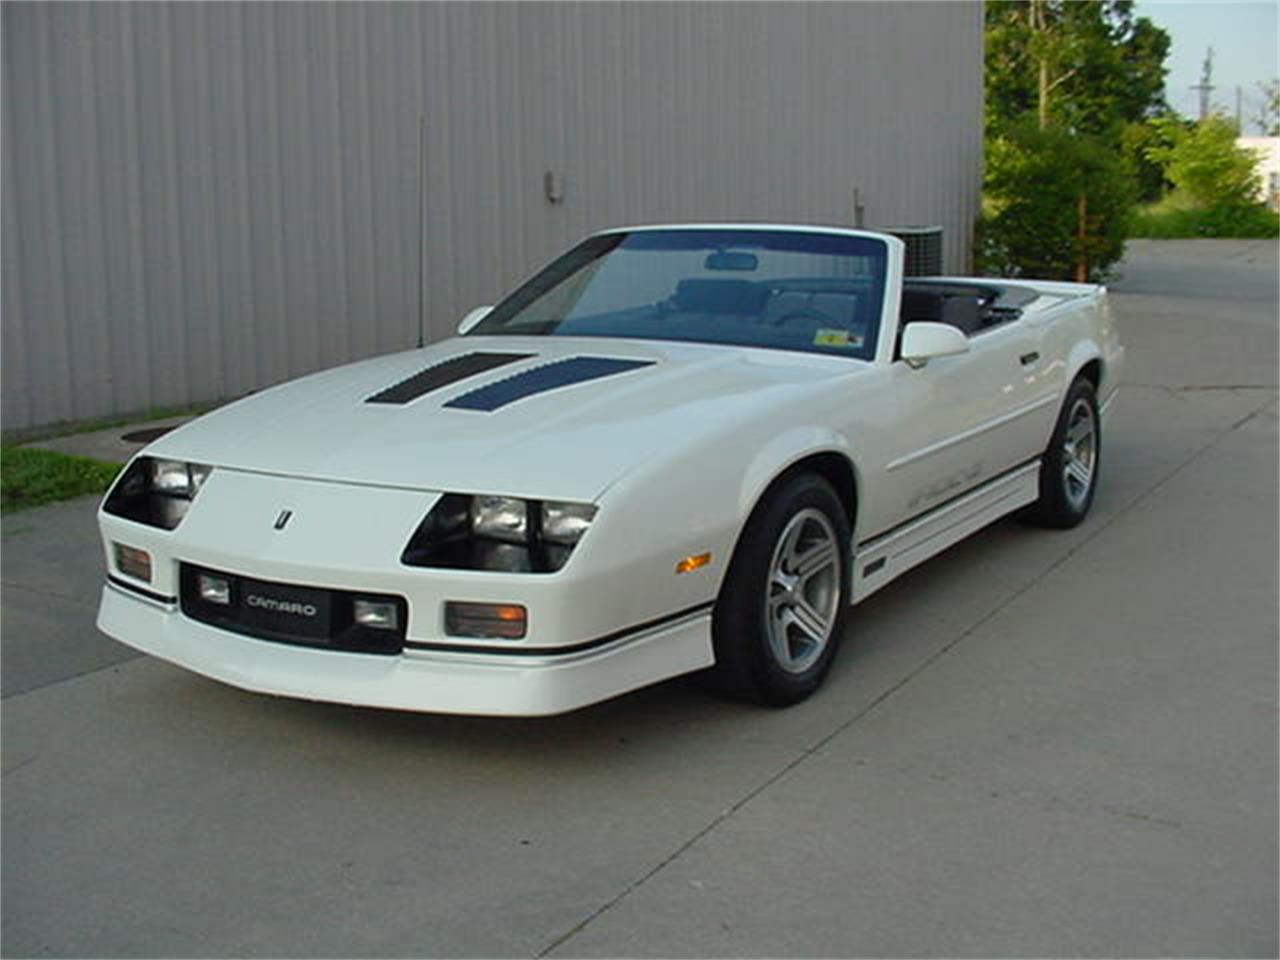 1989 Chevrolet Camaro IROC-Z for sale in Milford, OH